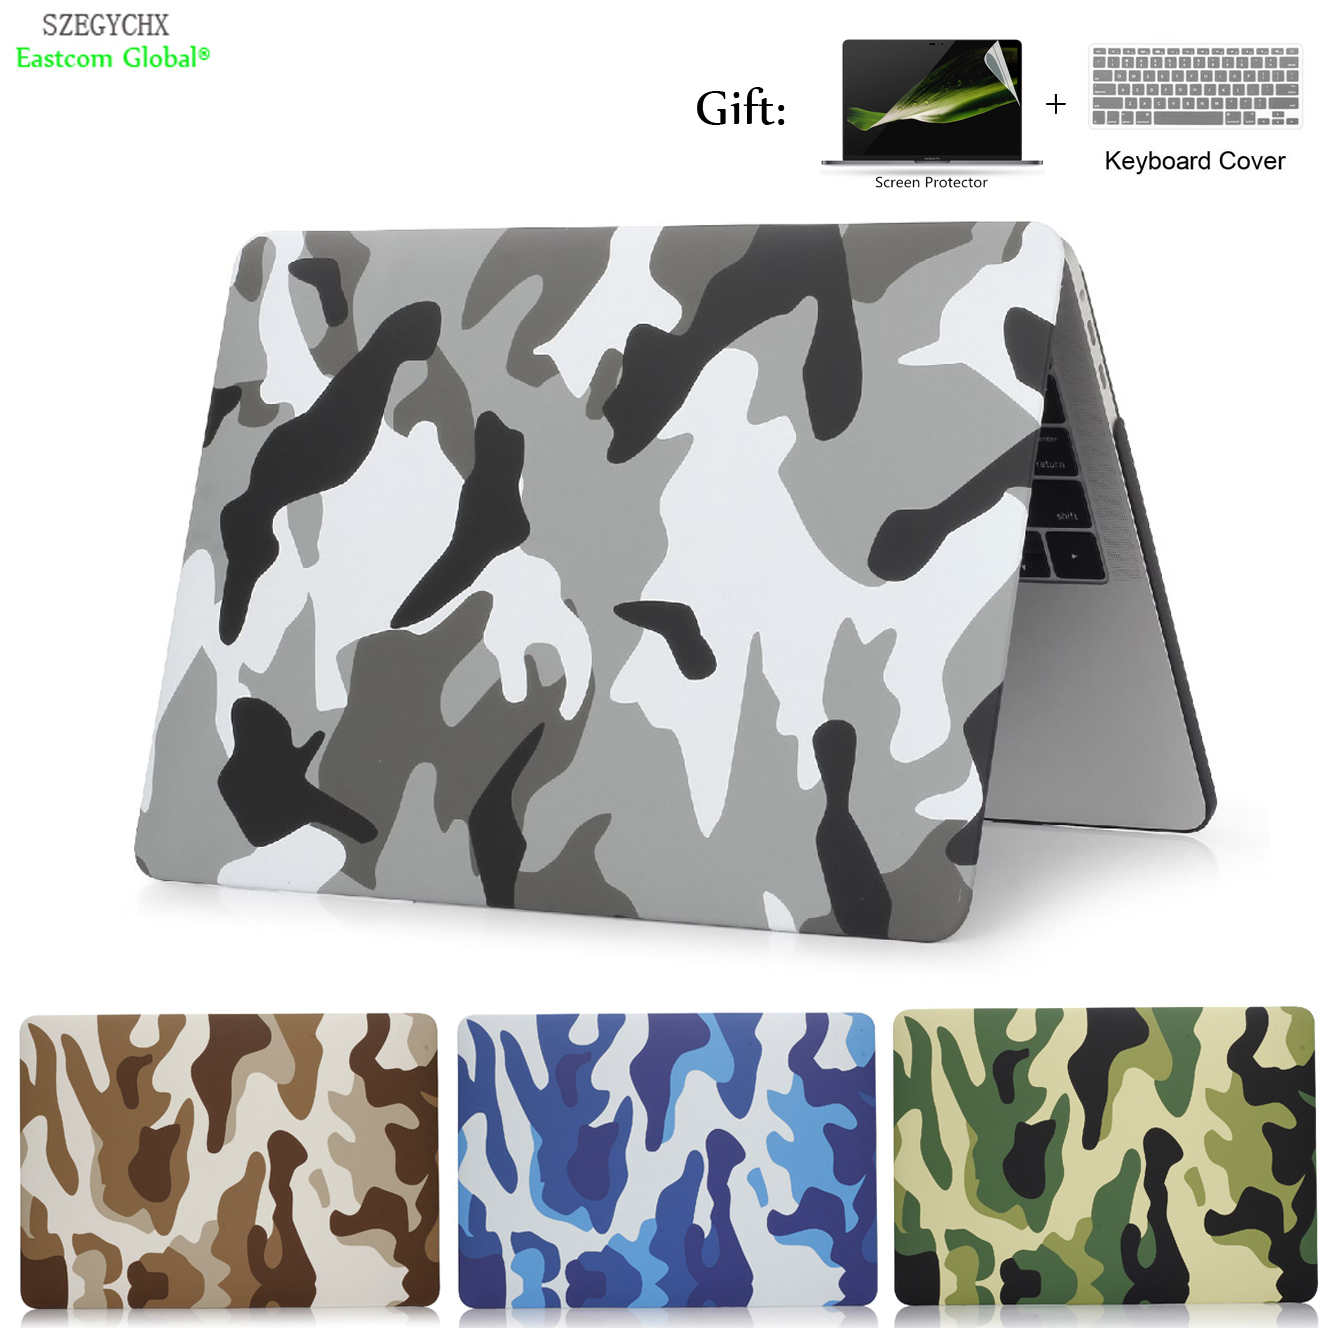 Camouflage shell Laptop Fall für MacBook Air 13 11 Pro Retina 12 13.3 15 touch bar Für Macbook New Air 13 A1932 2018 Fall